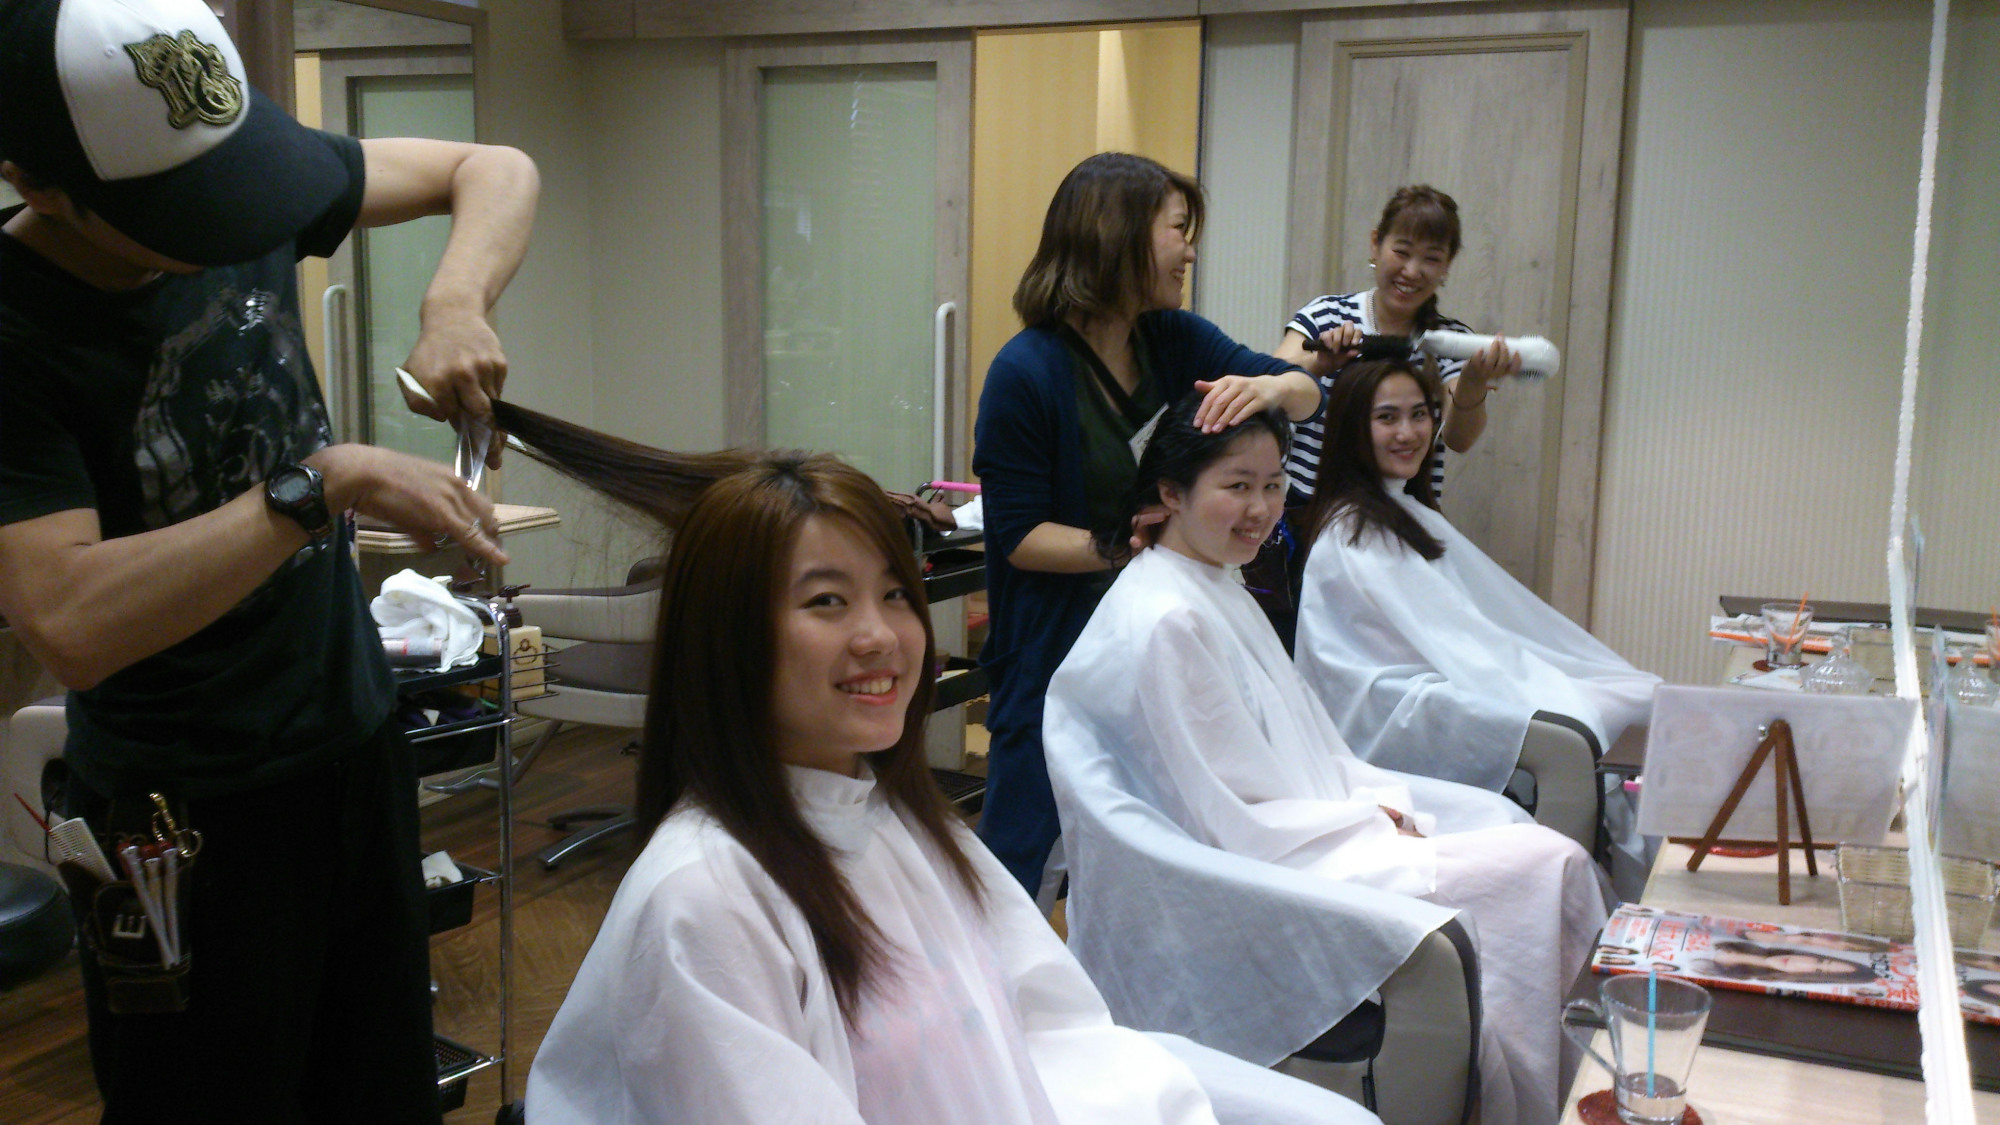 I Style Hair Salon: Japan's Hair Salons Reaching Out To Expats, Tourists And